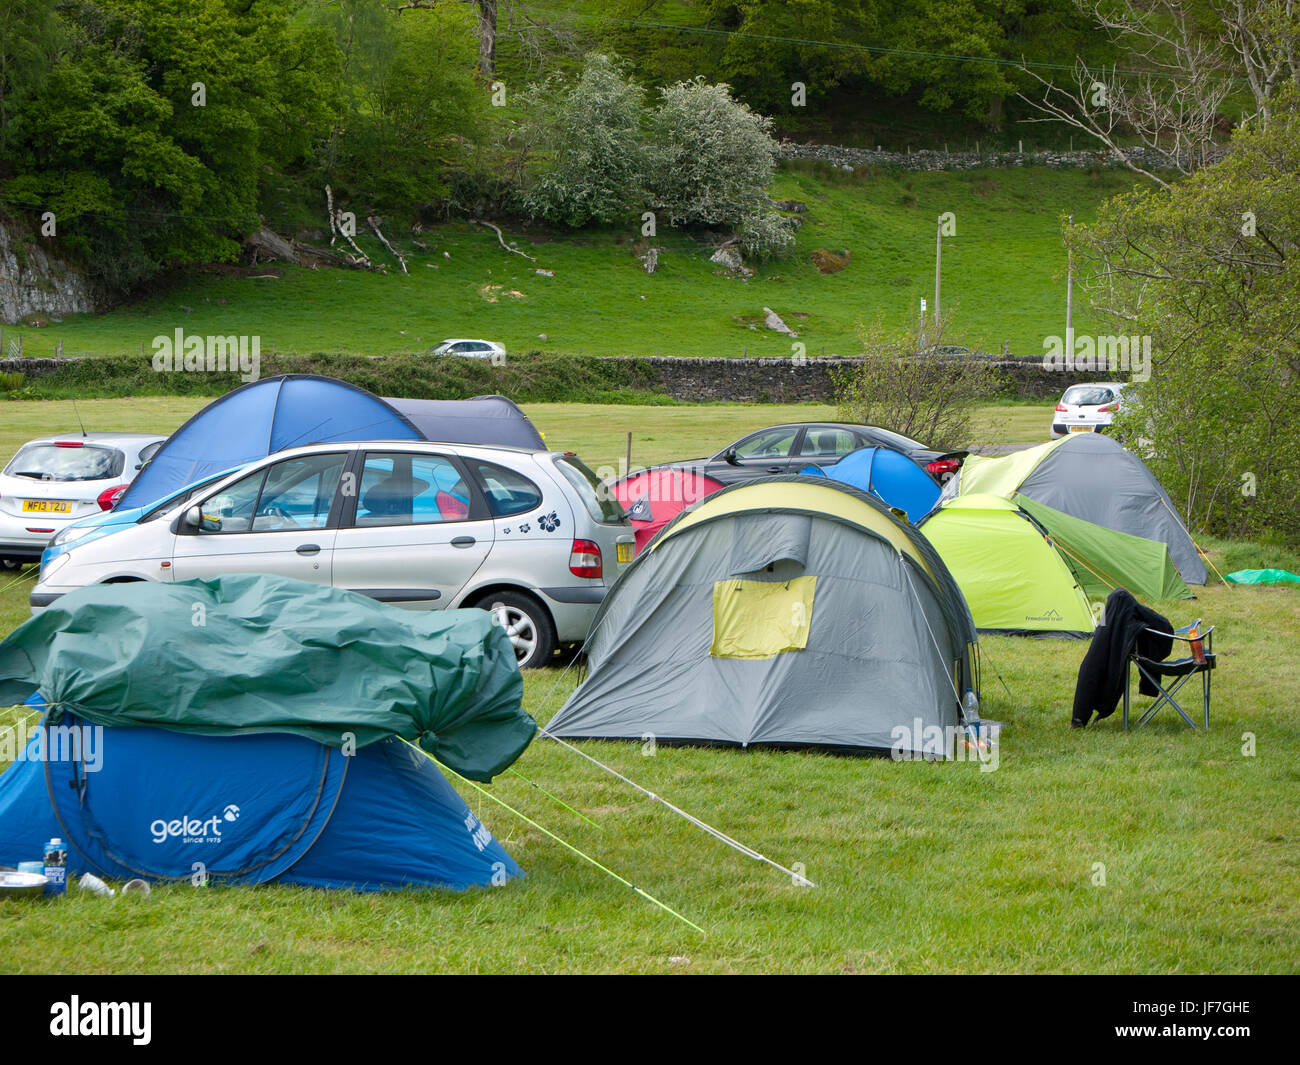 Tents at a campsite in North Wales, UK. - Stock Image